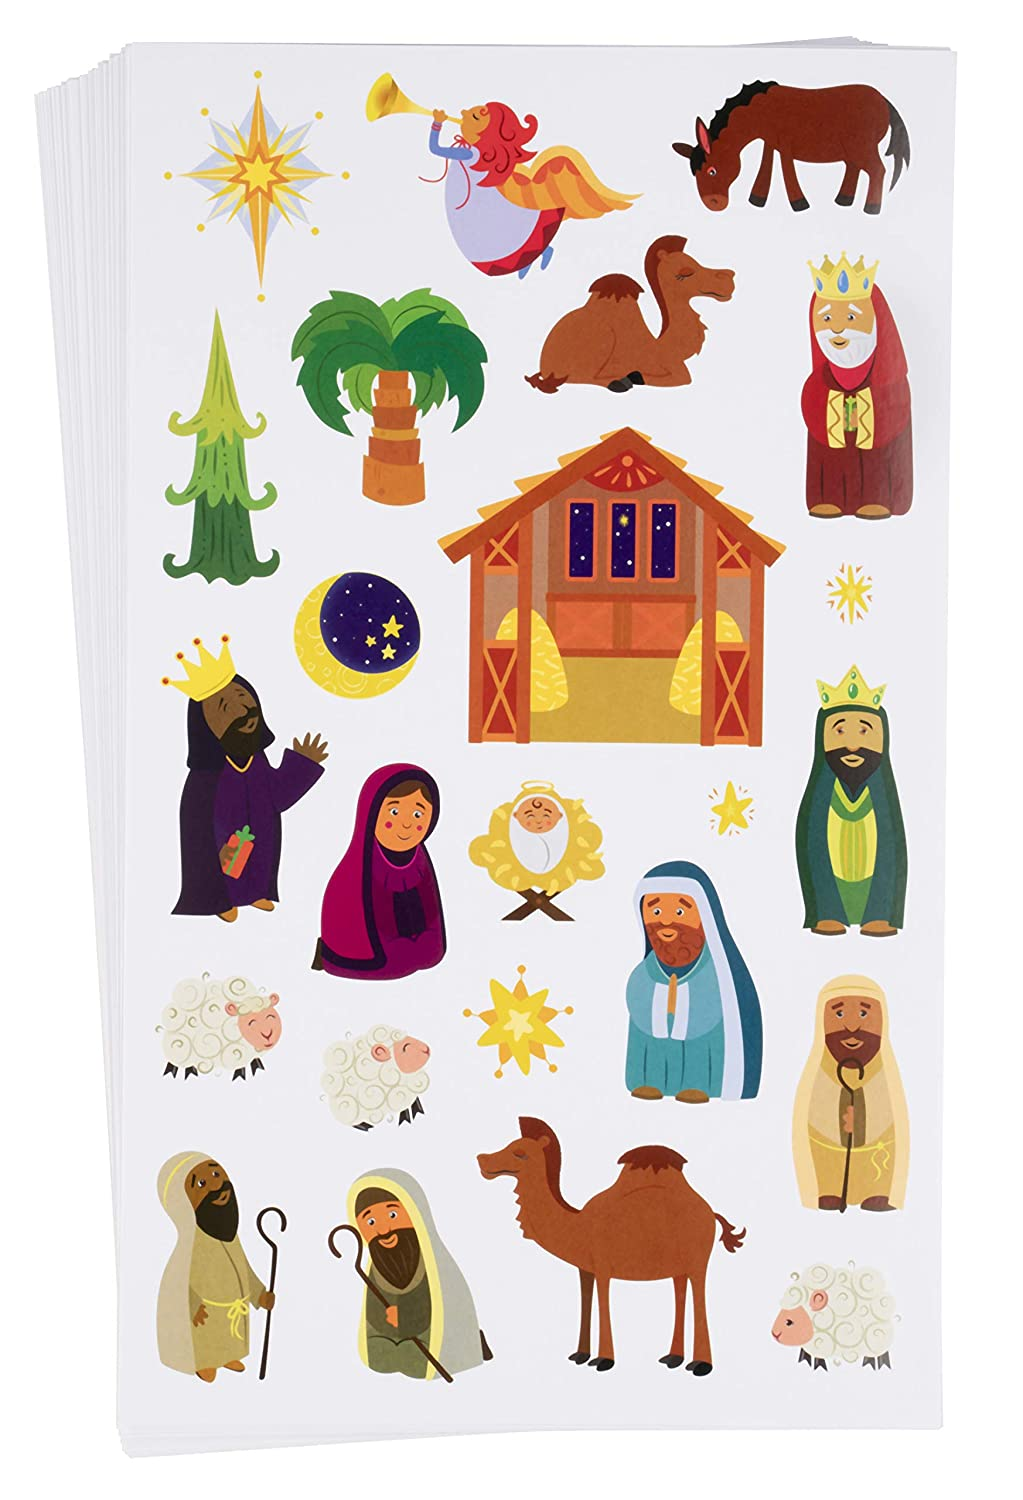 Juvale Nativity Stickers - 864-Count Christmas Stickers, Scrapbook Stickers Kids Christmas Holiday Party Favors, Church, Bible School, 36 Sheets, 8.5 x 5 inches